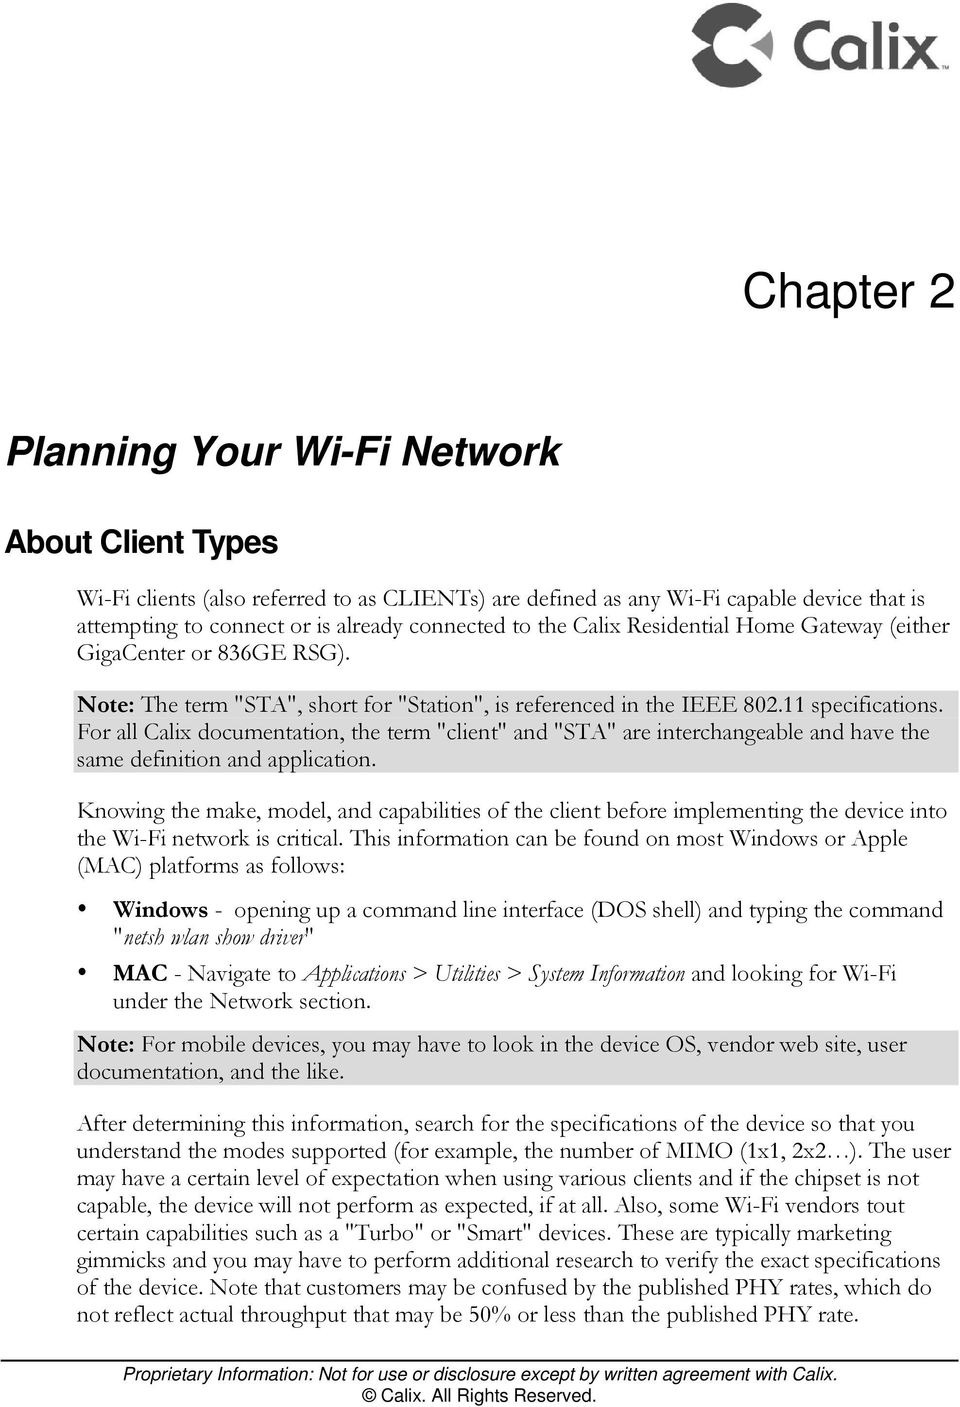 Calix Residential Gateway Wi-Fi Best Practices Guide - PDF